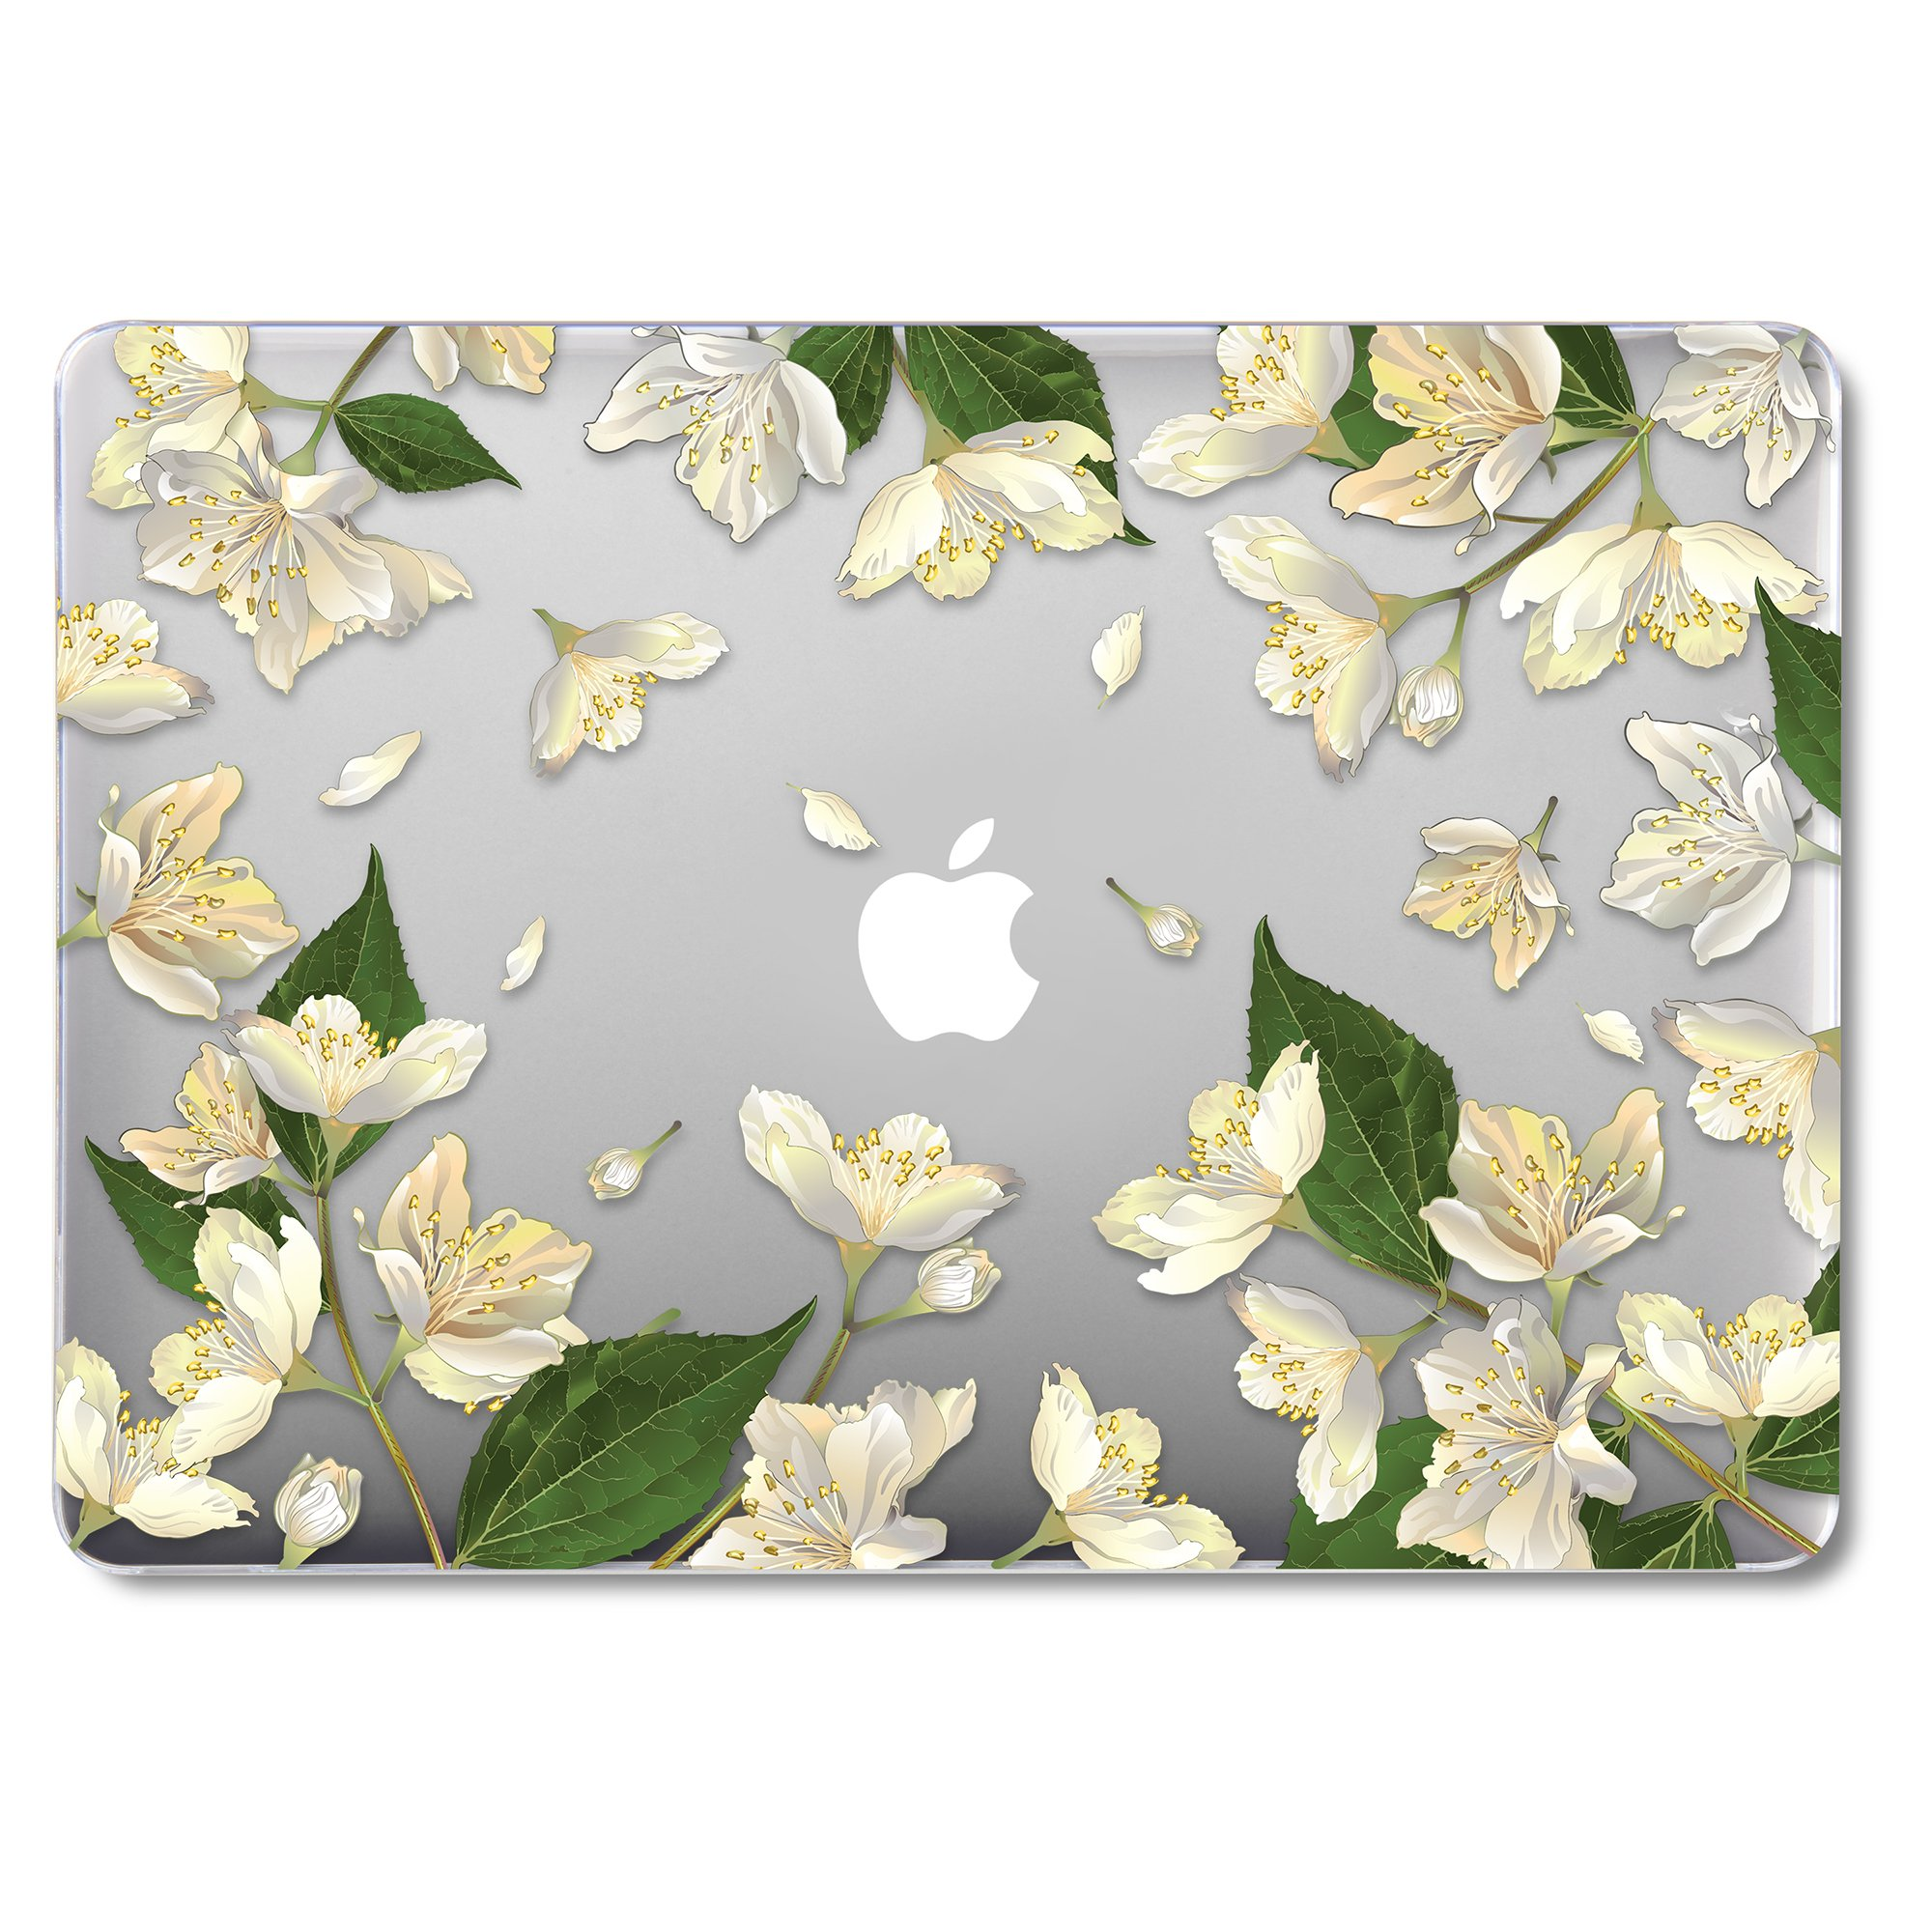 GMYLE MacBook Air 13 Inch Case A1466, Soft-Touch